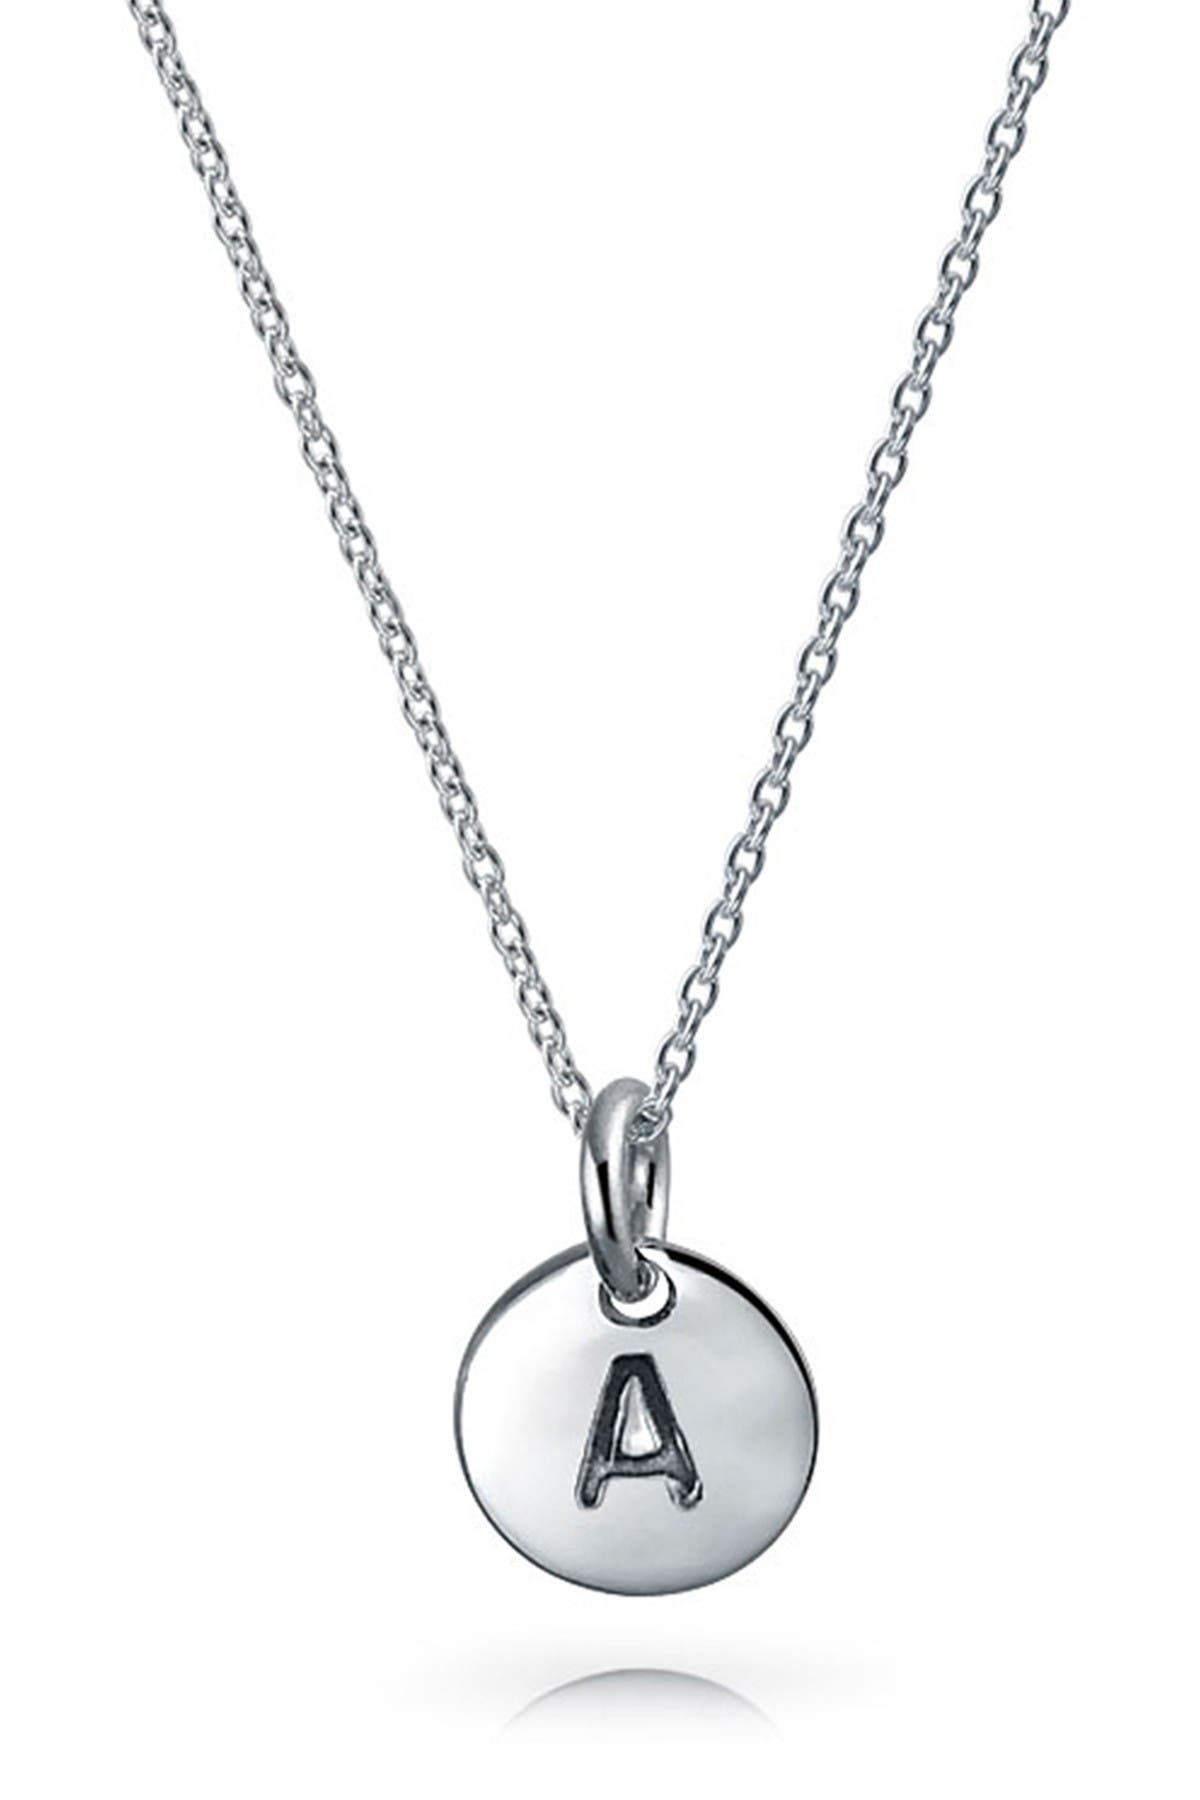 Image of Bling Jewelry Sterling Silver Minimalist Initial Pendant Necklace